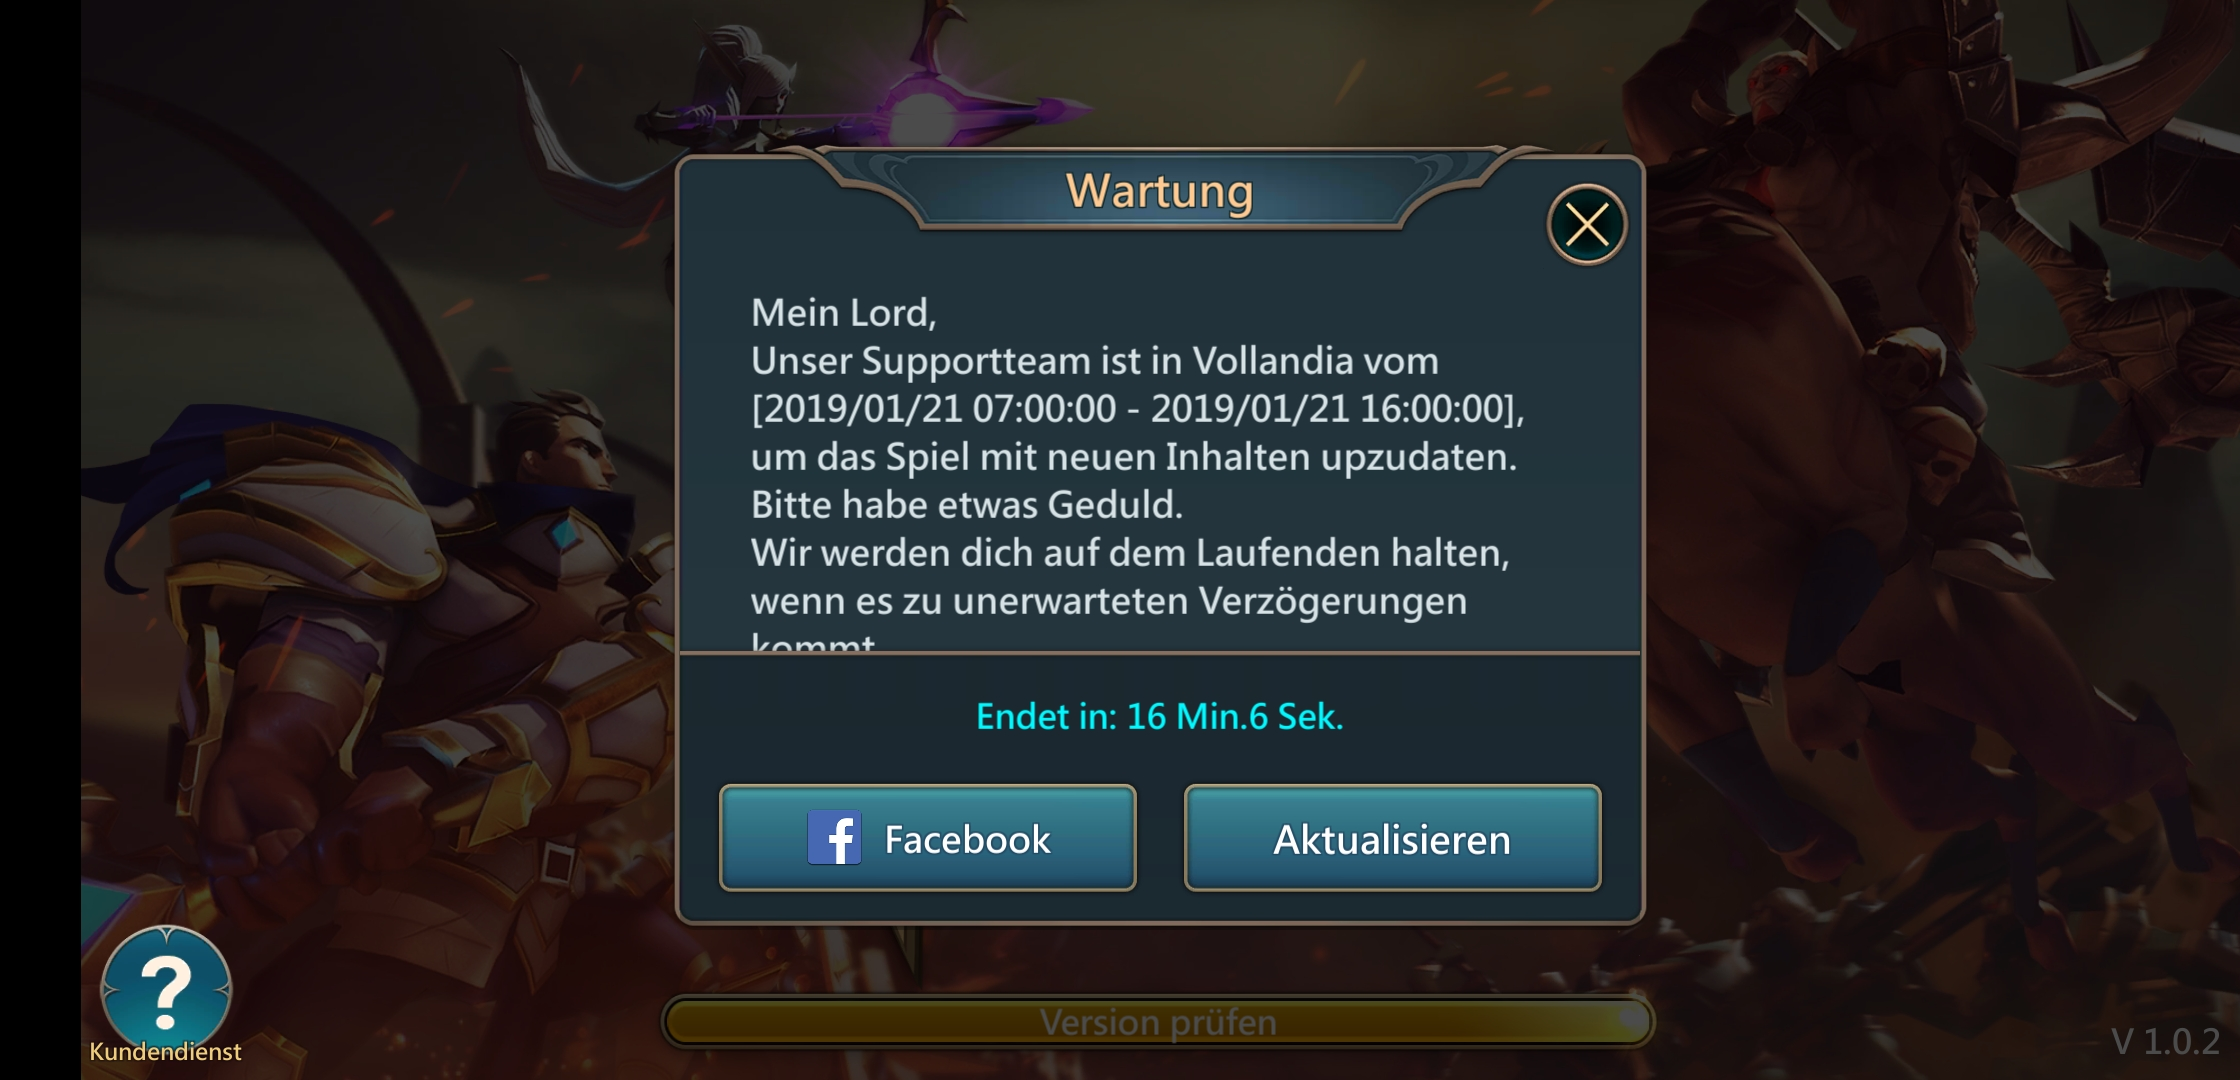 Mobile Royale Wartung